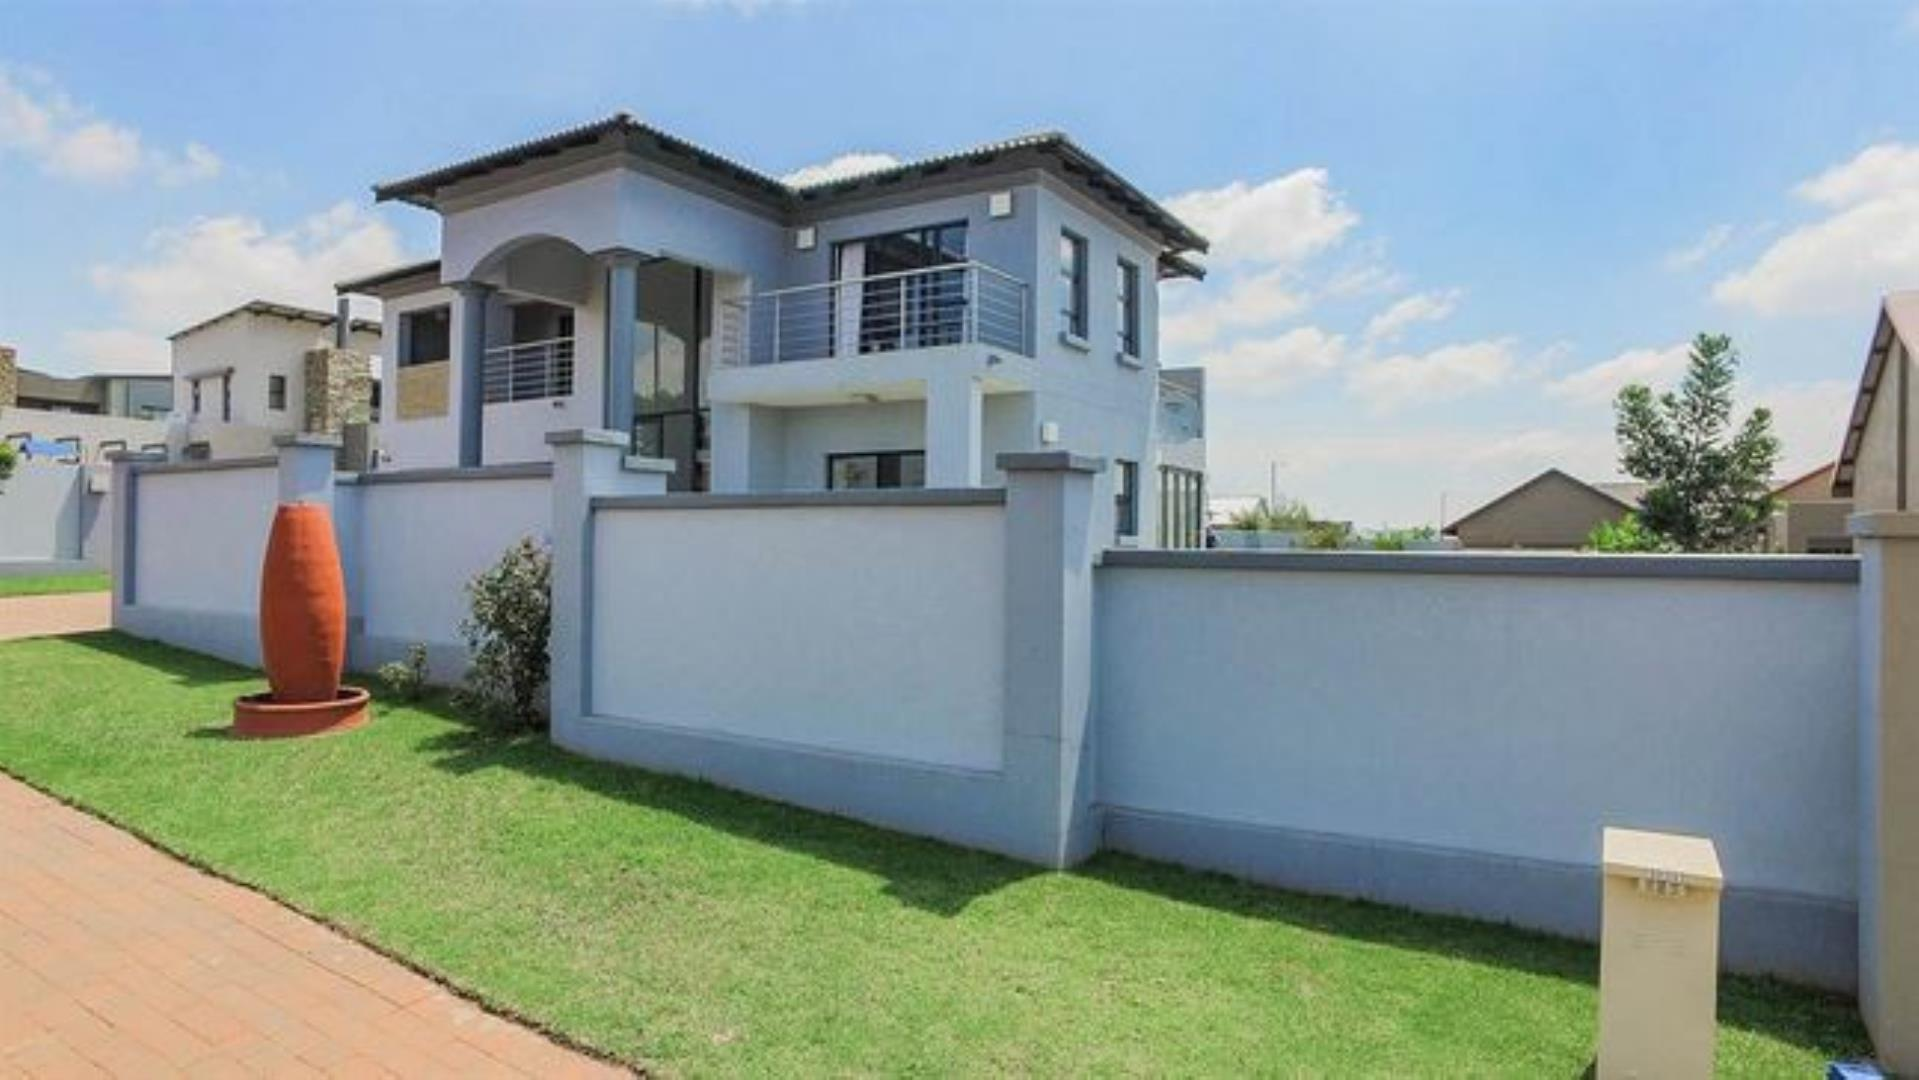 106631_2019-08-26 06_07_13-5 Bed House for sale in Midstream Estate _ T7098 _ Private Property.jpg